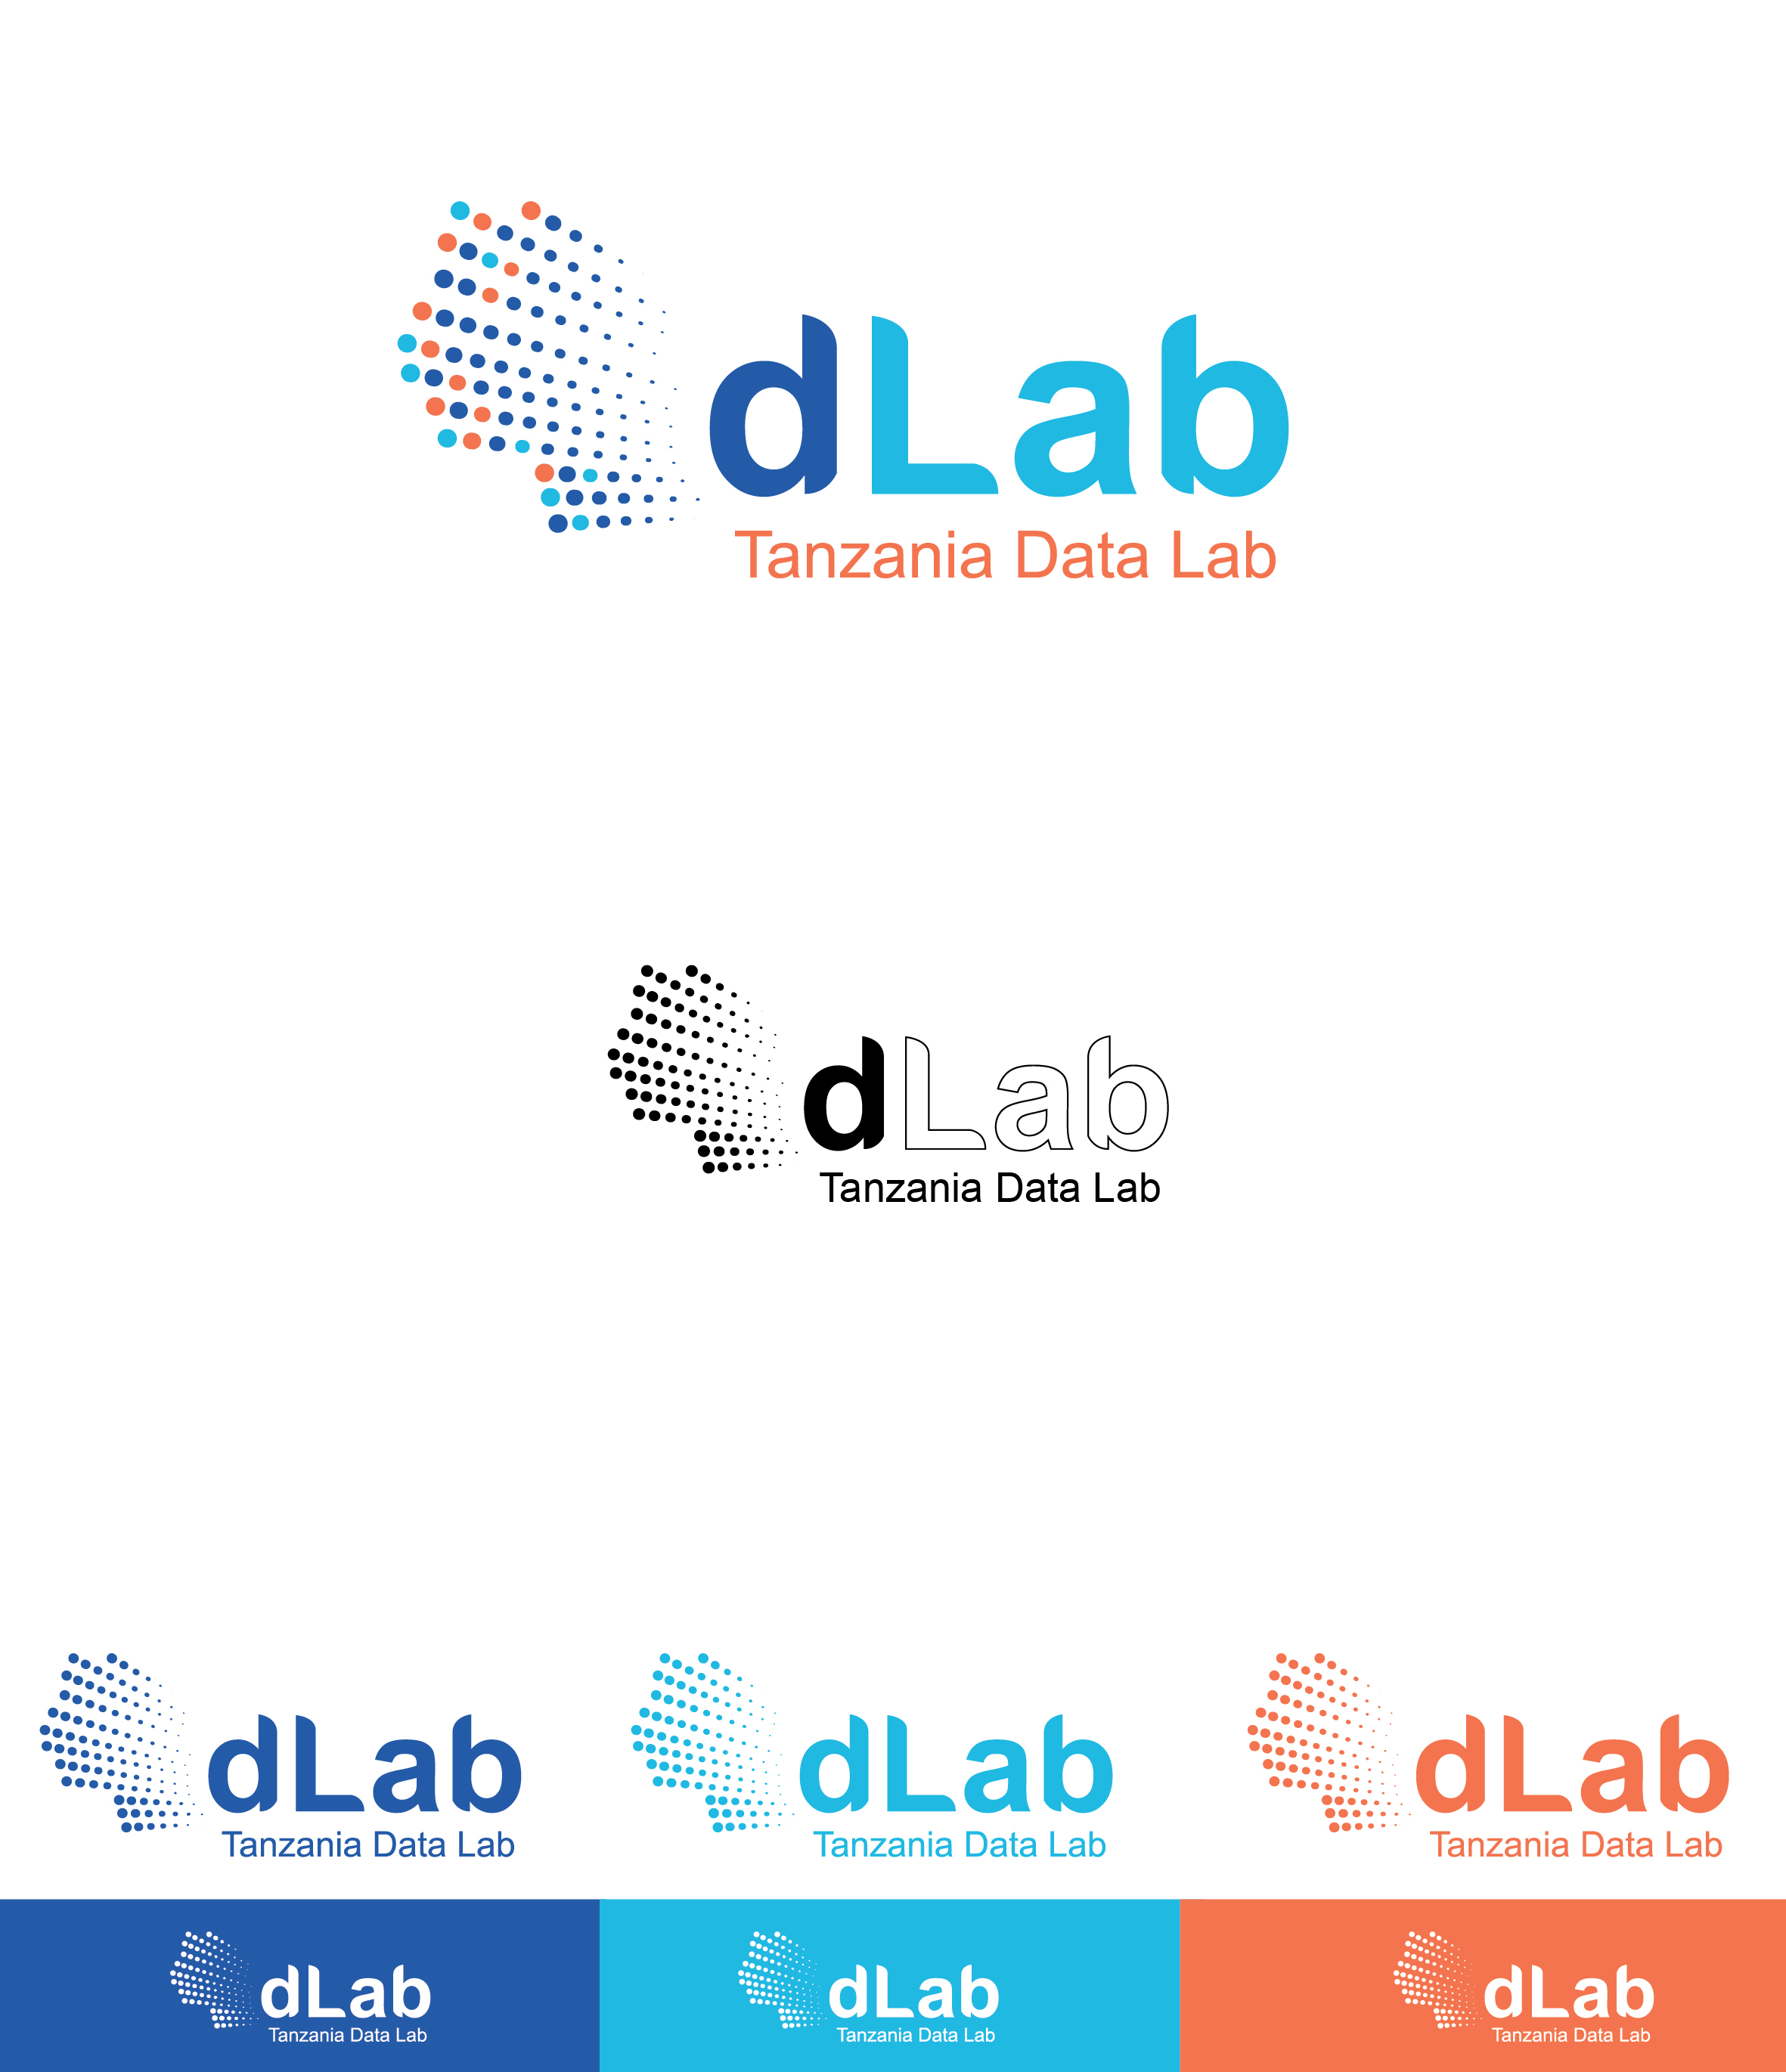 dLab logo in differenct colors